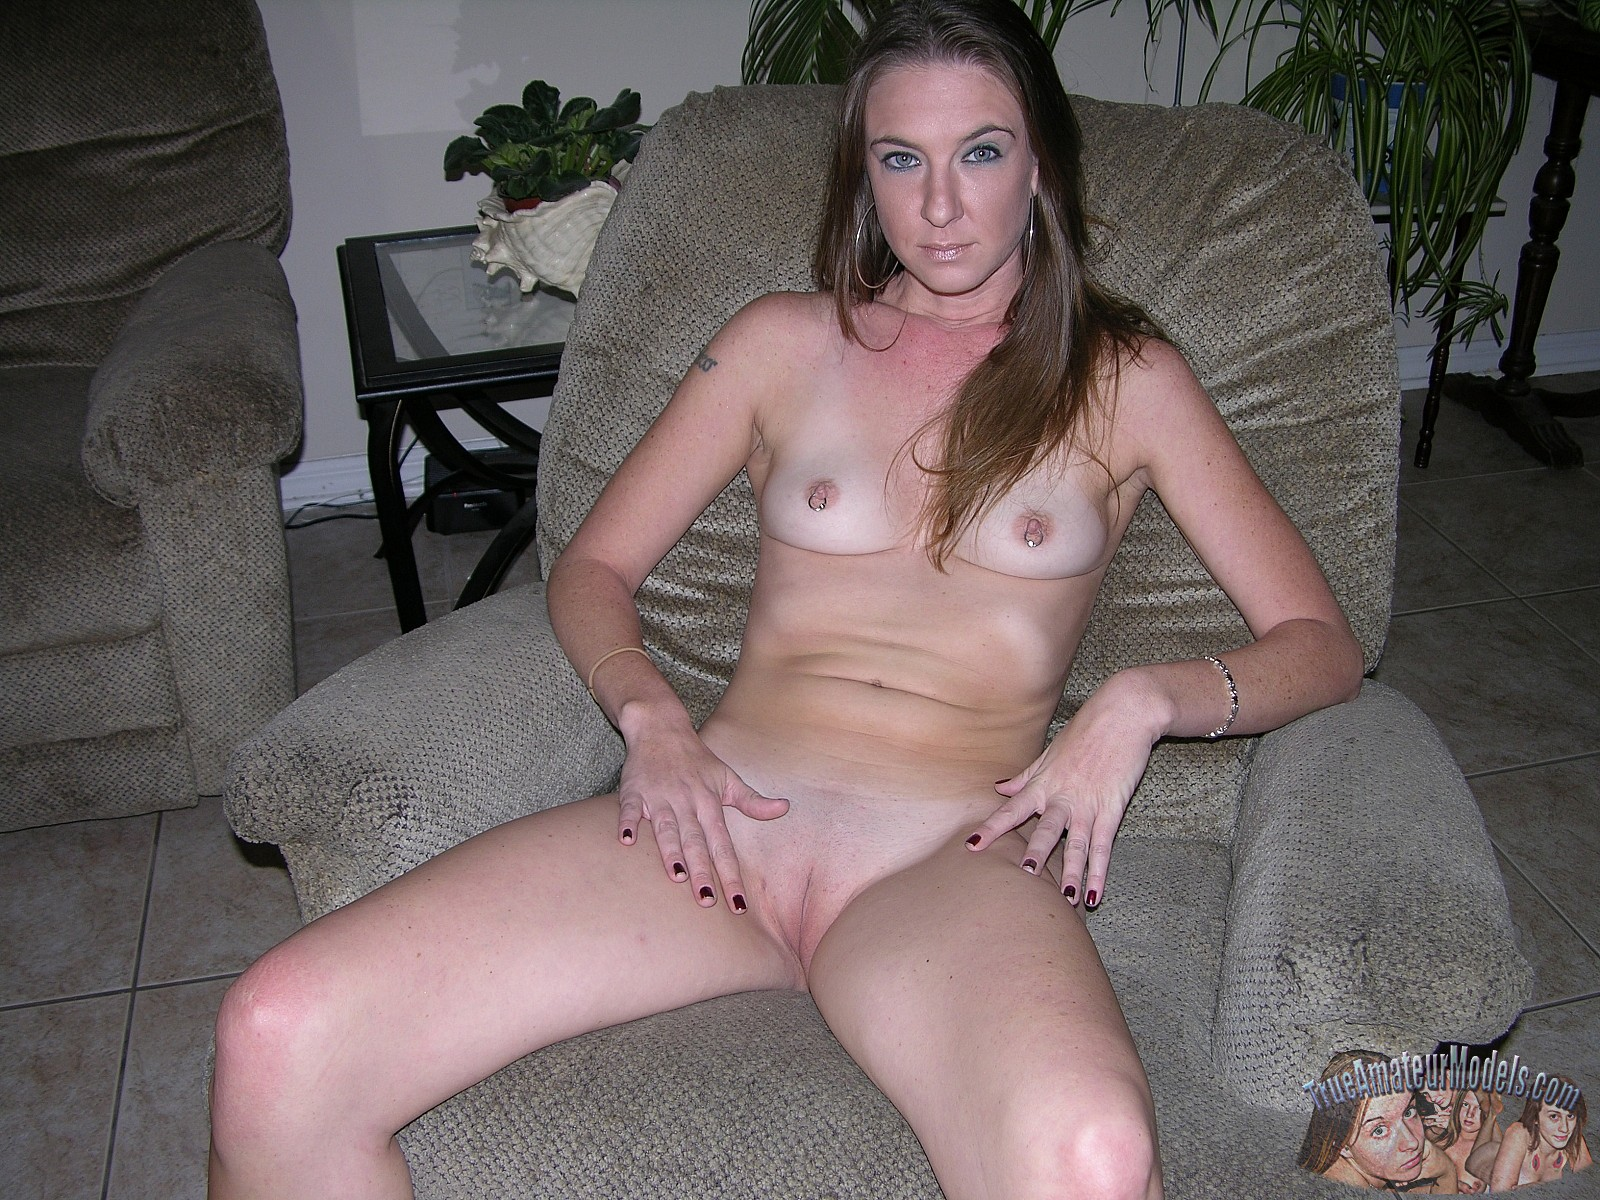 forced-nudity-pussy-getting-fucked-with